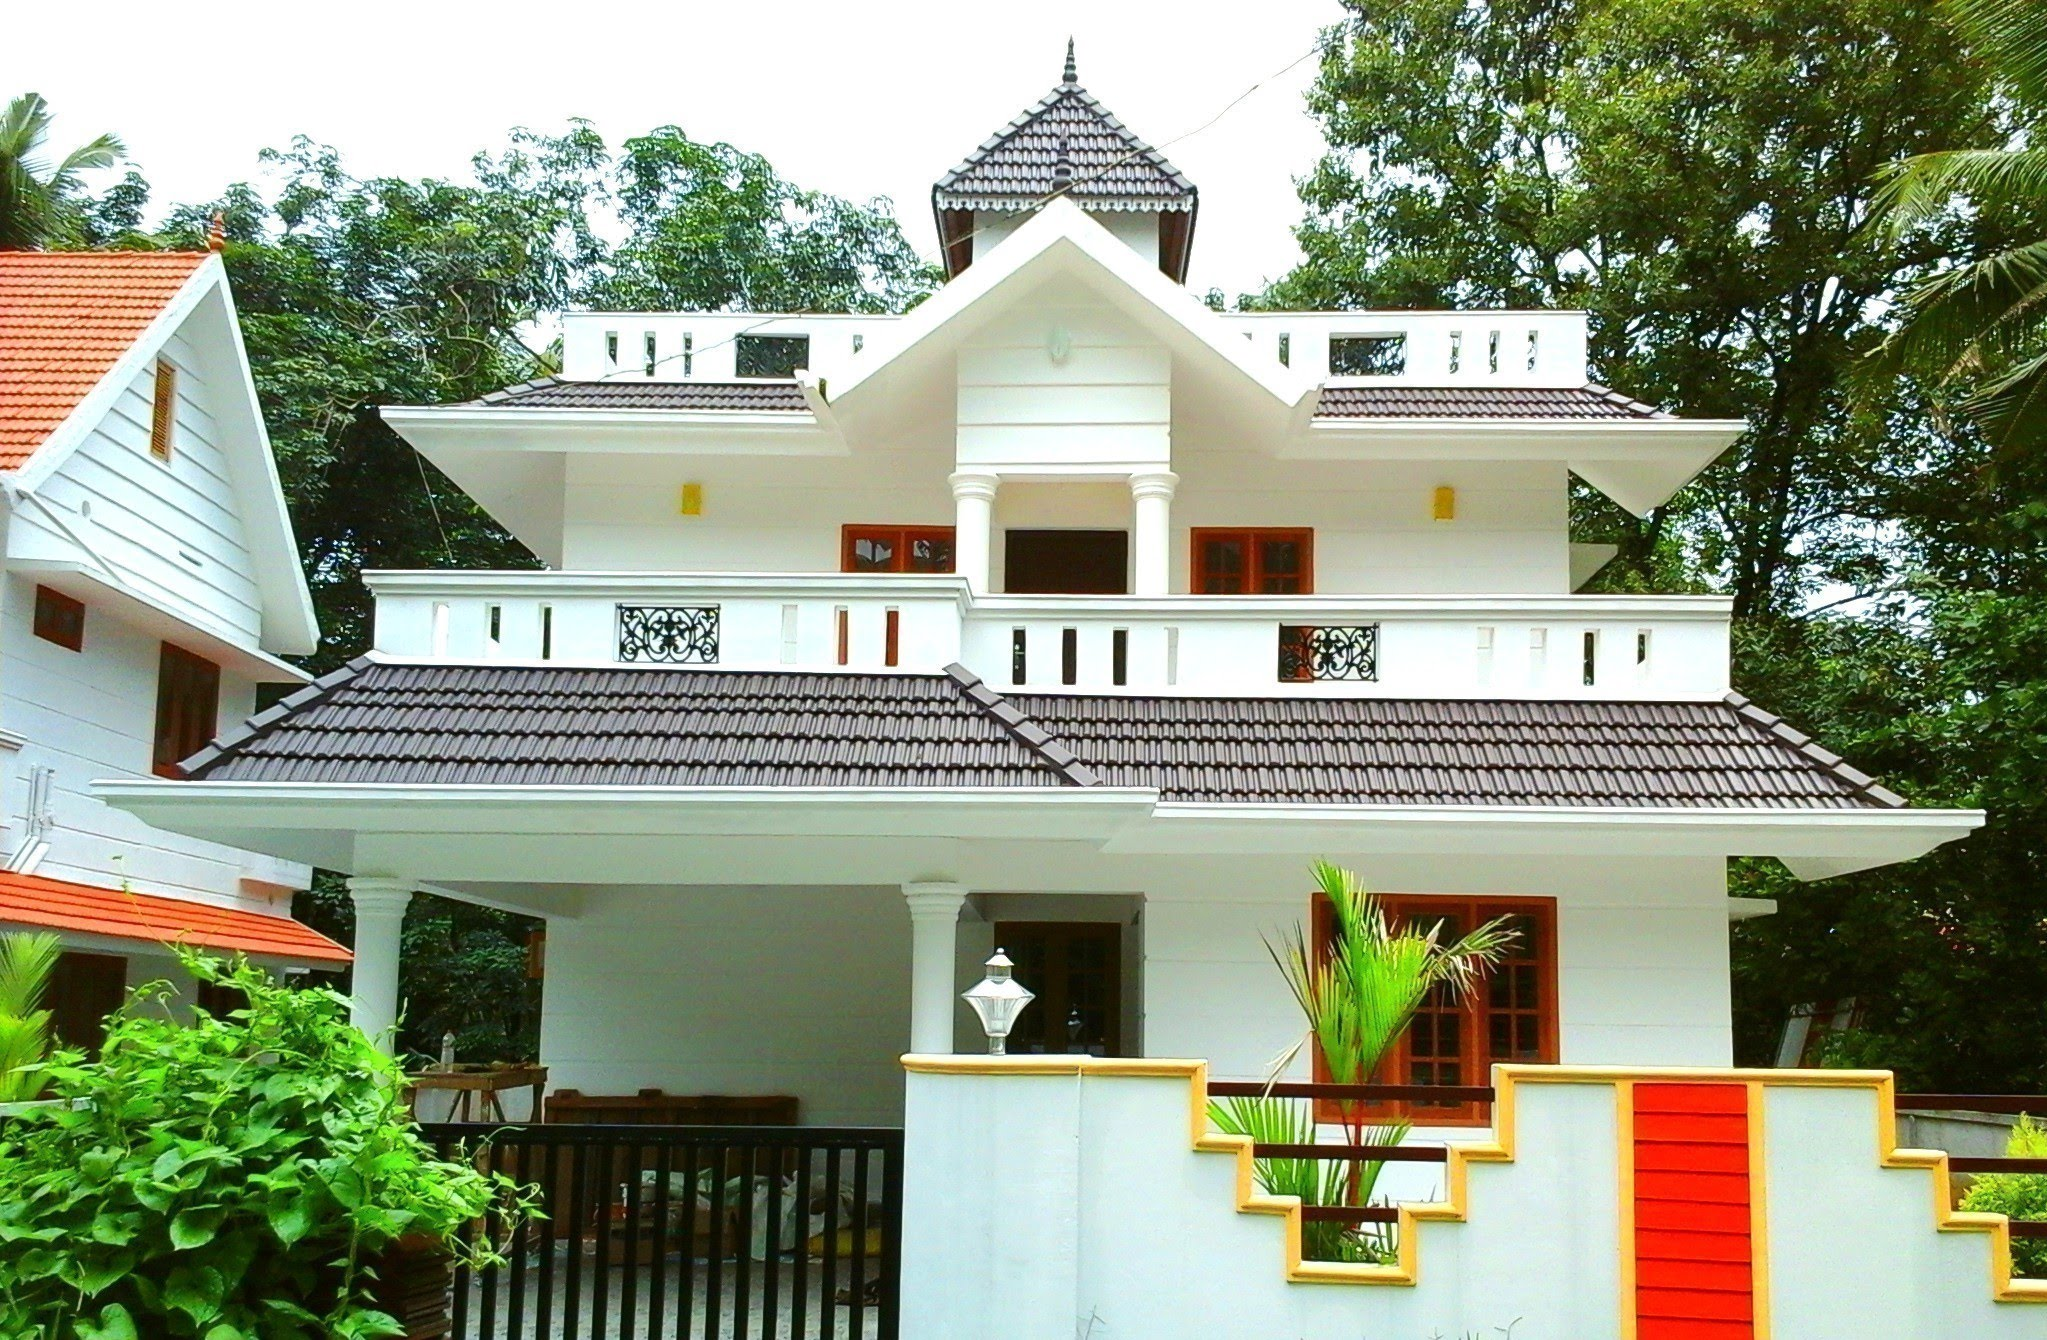 understanding a traditional kerala styled house design - happho